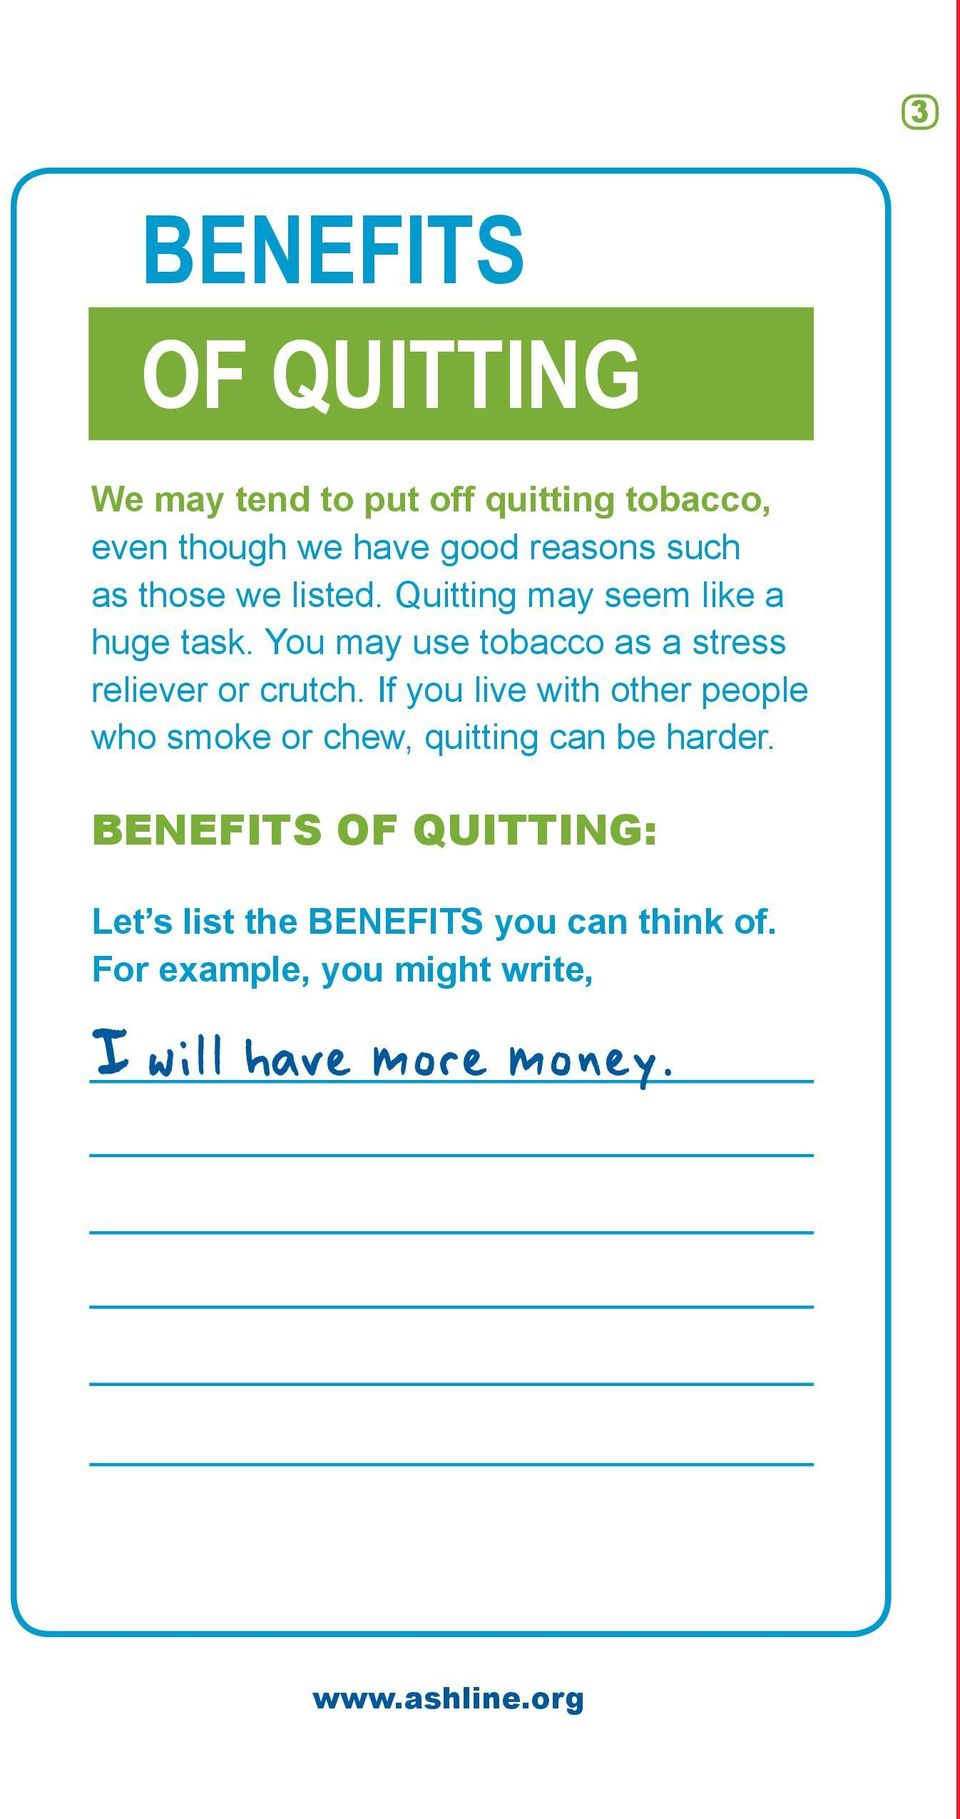 You may use tobacco as a stress reliever or crutch.